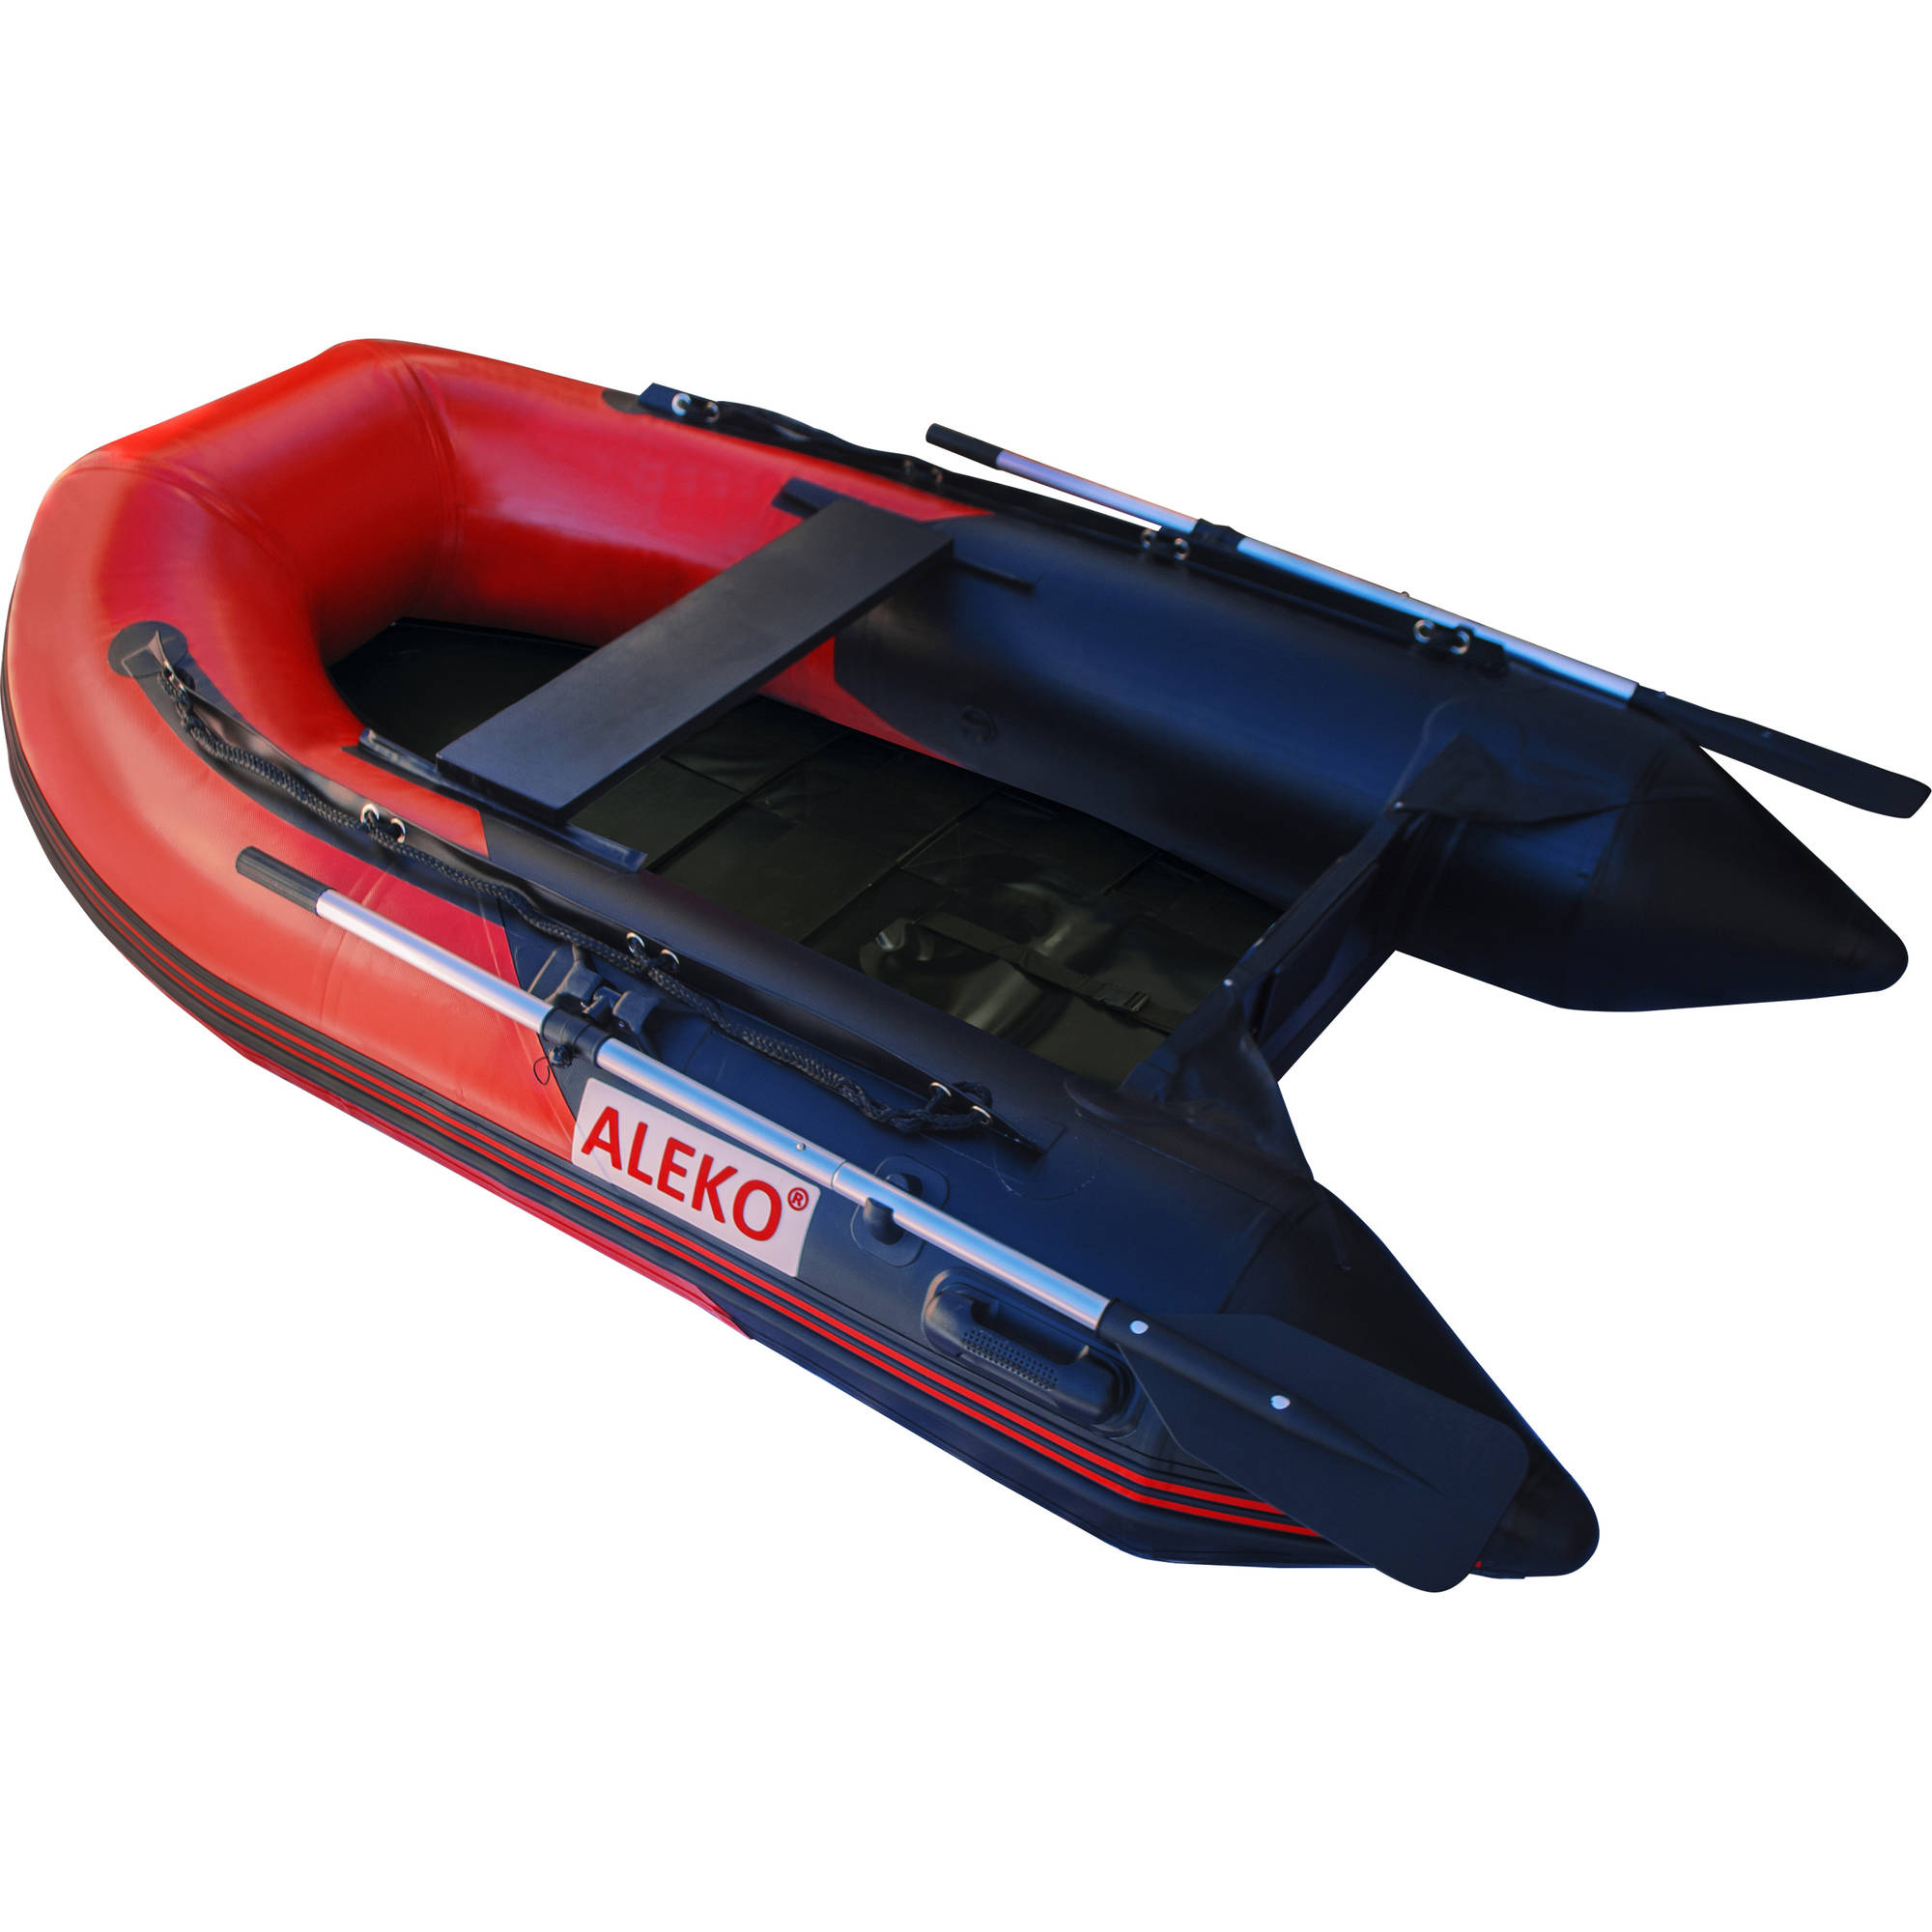 ALEKO Inflatable Boat Pre-Installed Slide Floor 3-Person 8.4 Feet Red and Black by ALEKO